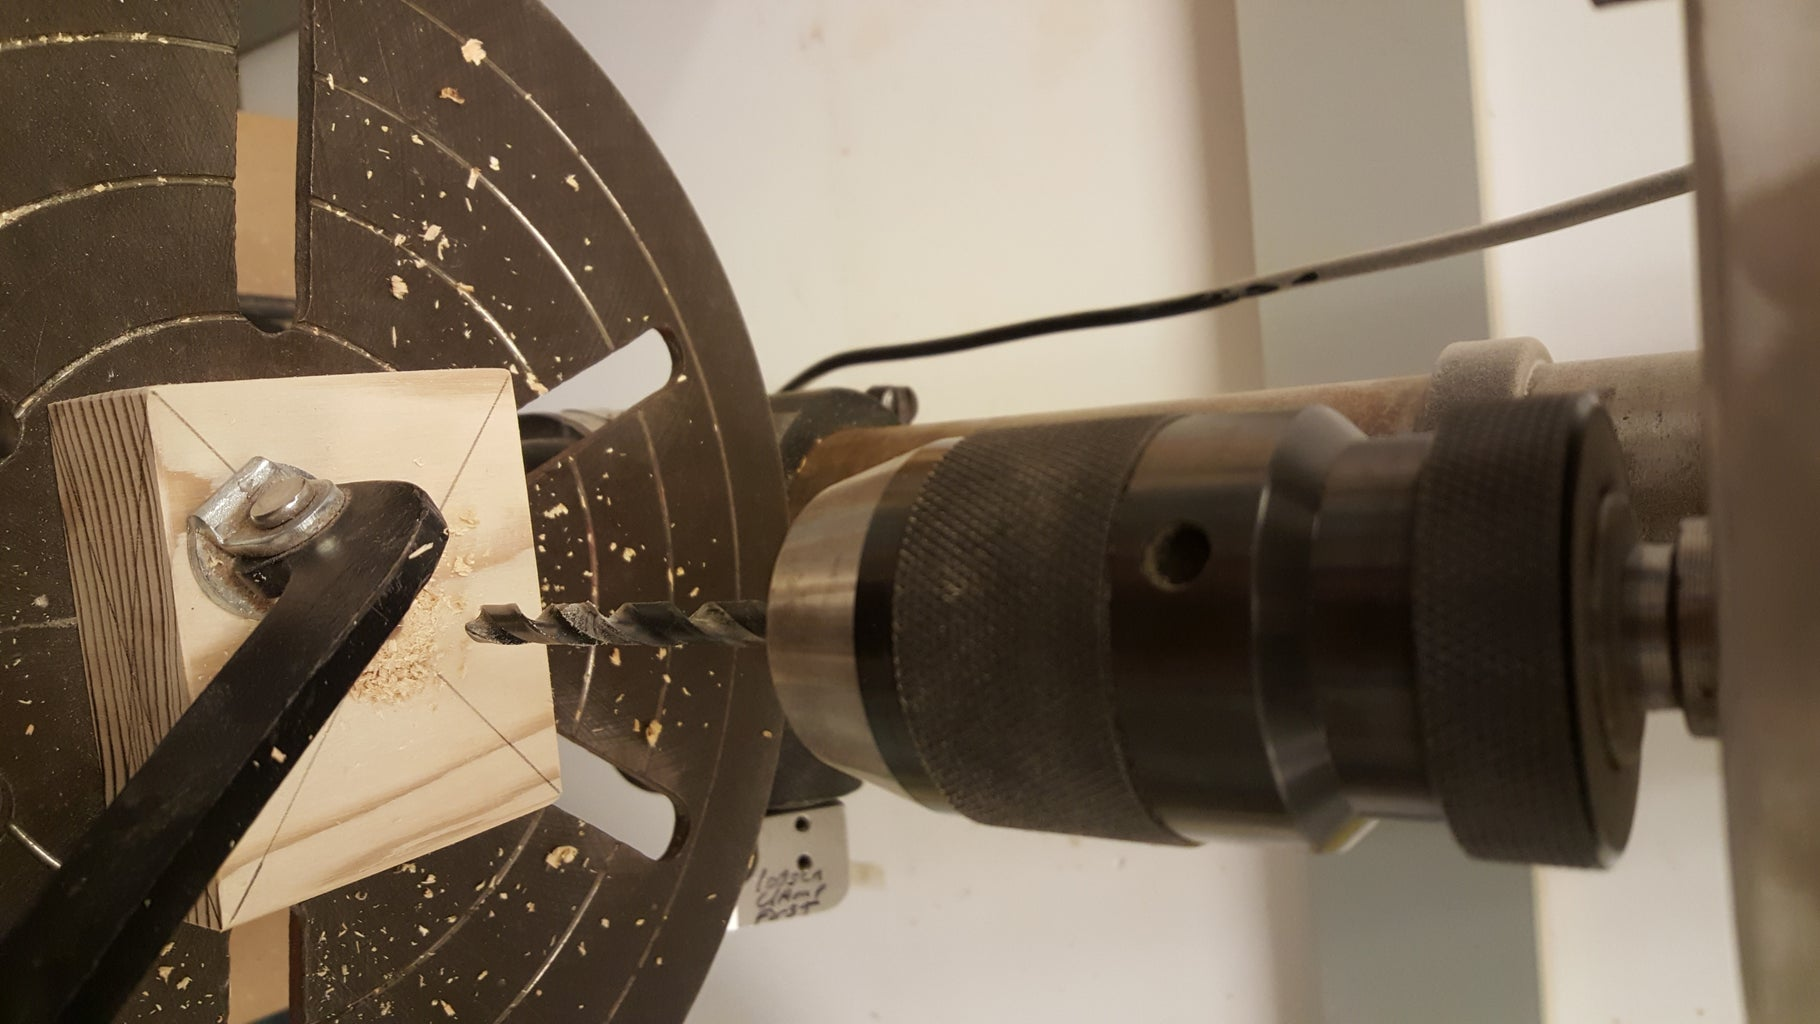 Shaft Block: Drill Shaft Hole and Pin Hole